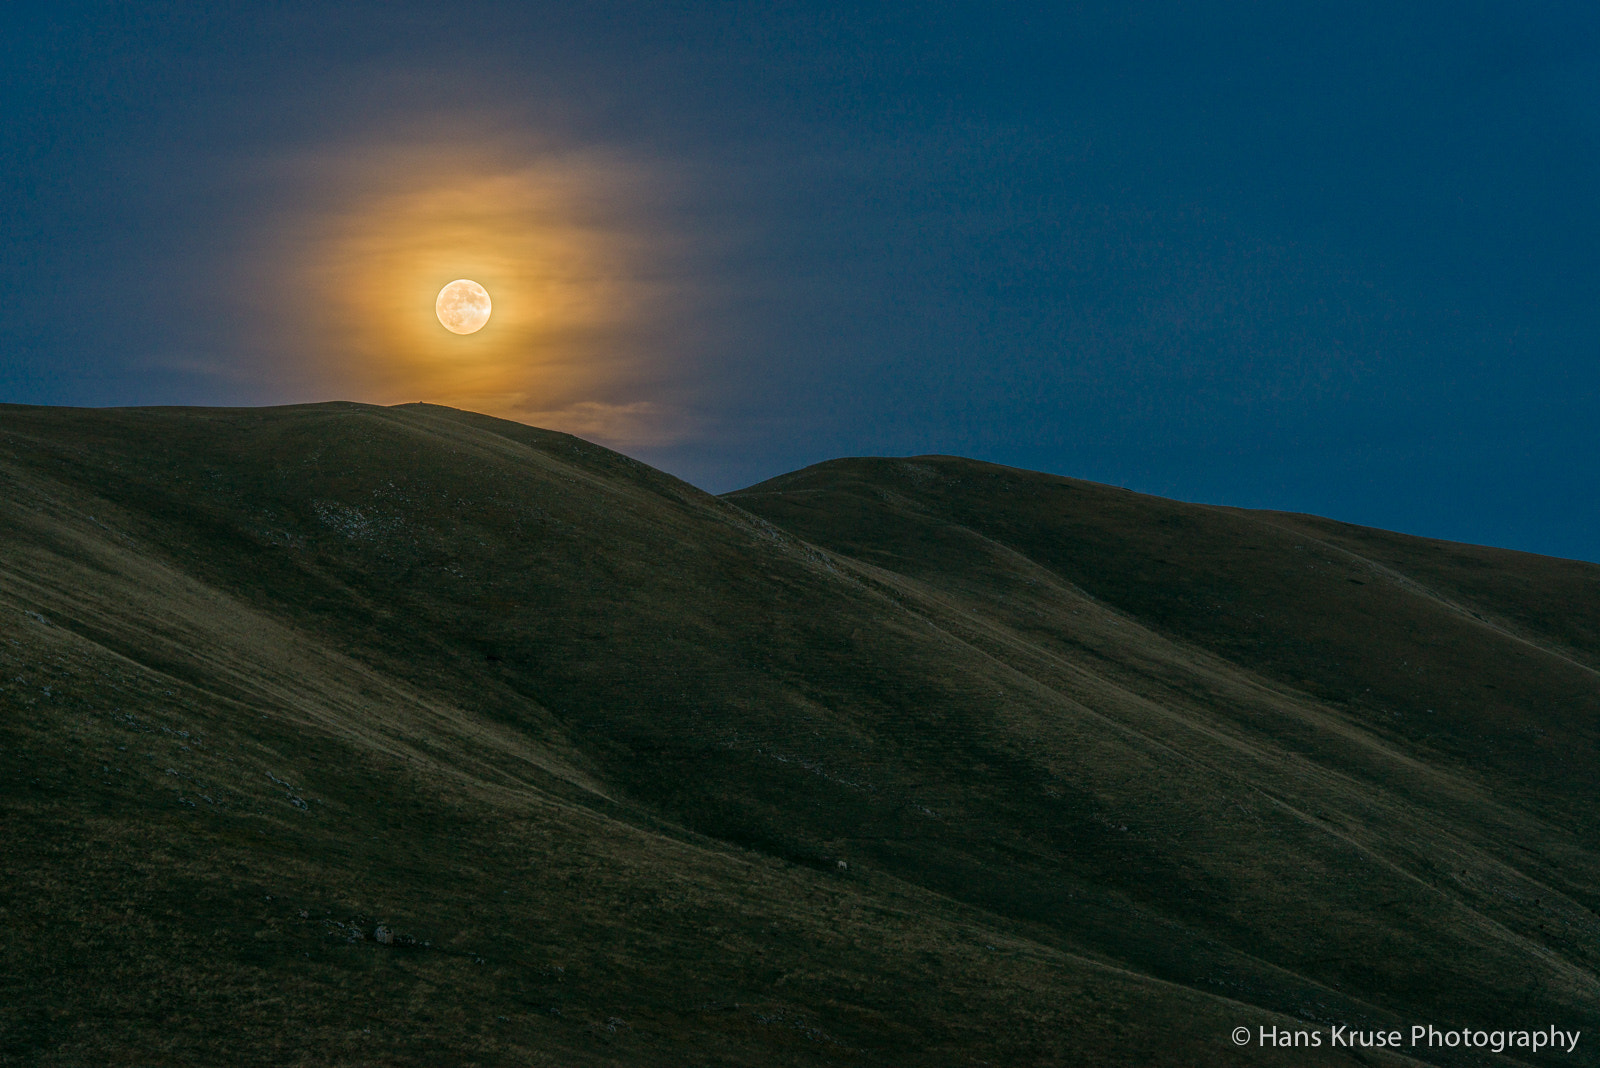 Photograph Moon over Campo Imperatore by Hans Kruse on 500px